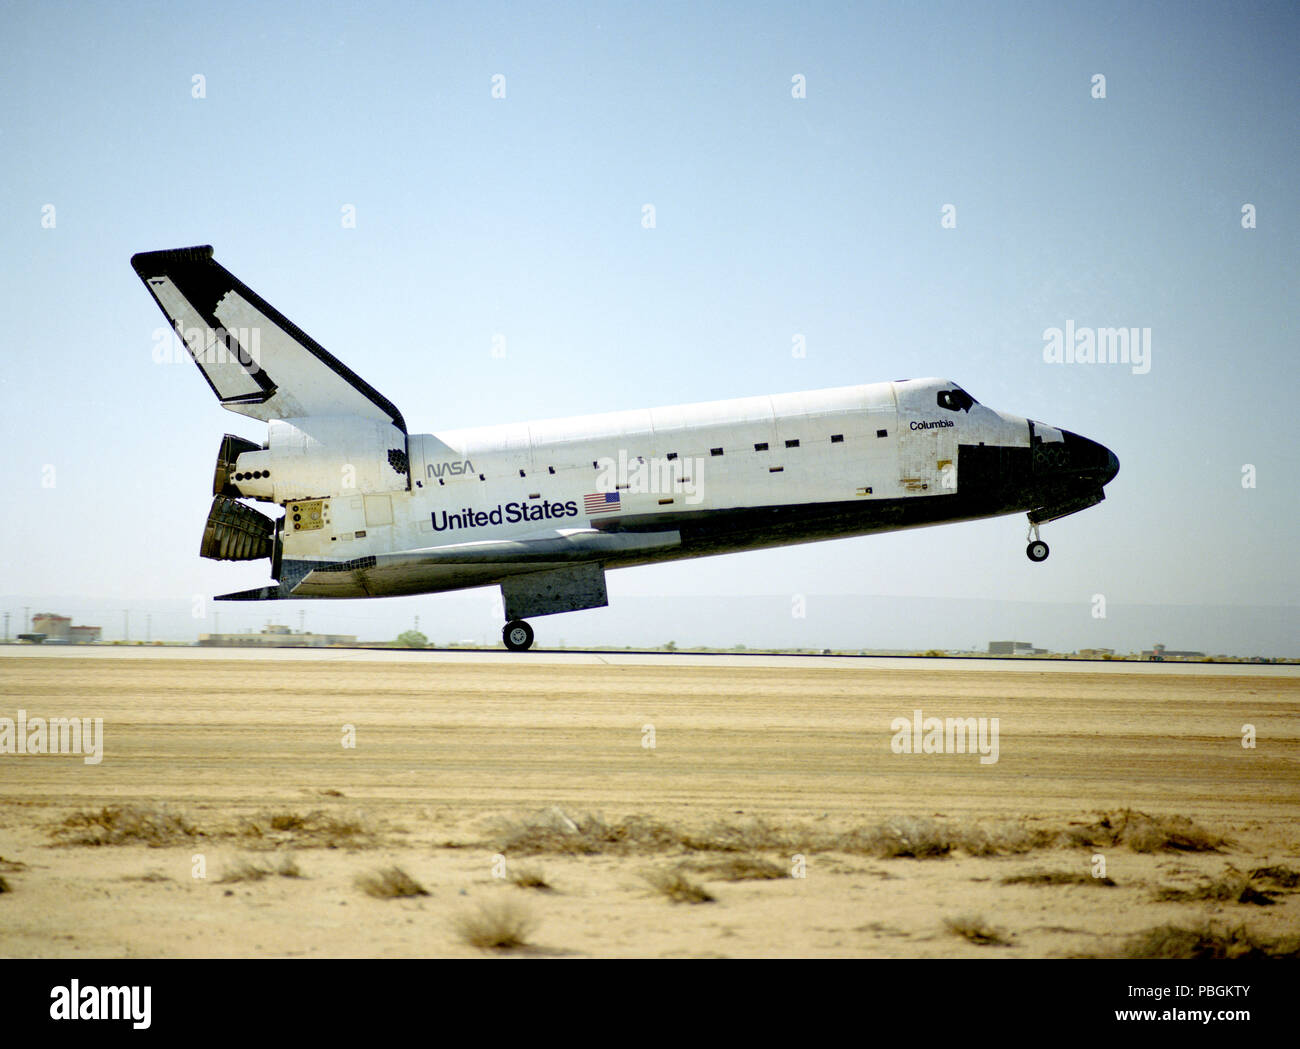 space shuttle landing at edwards air force base - photo #15